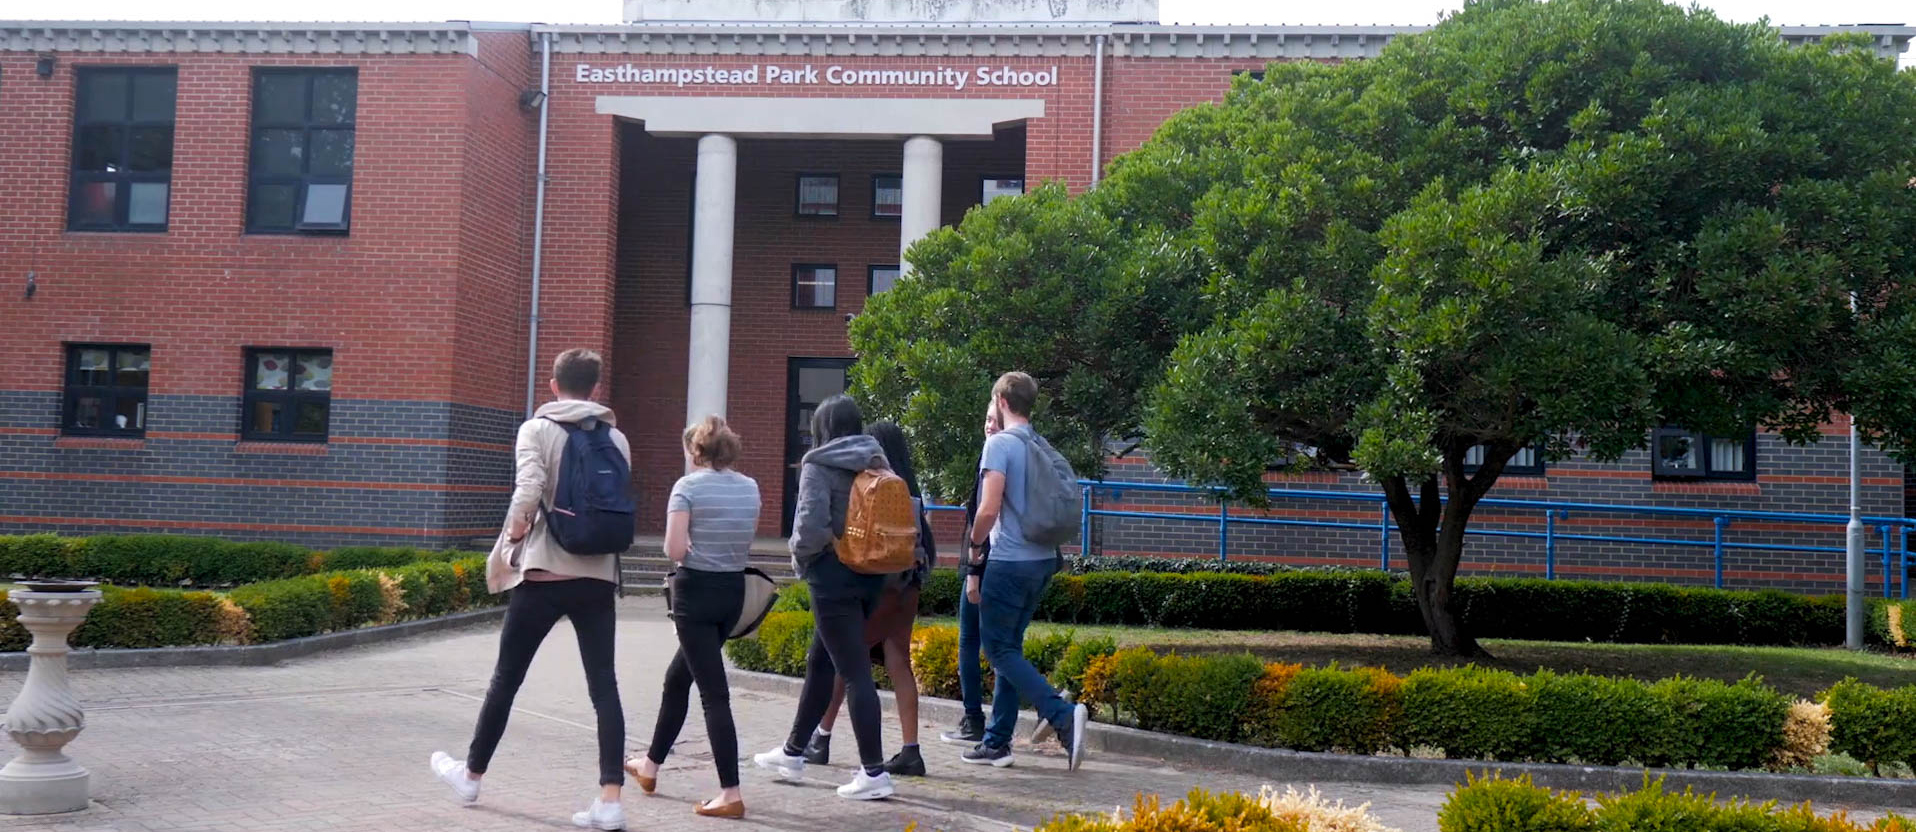 6th Form pupils entering the school